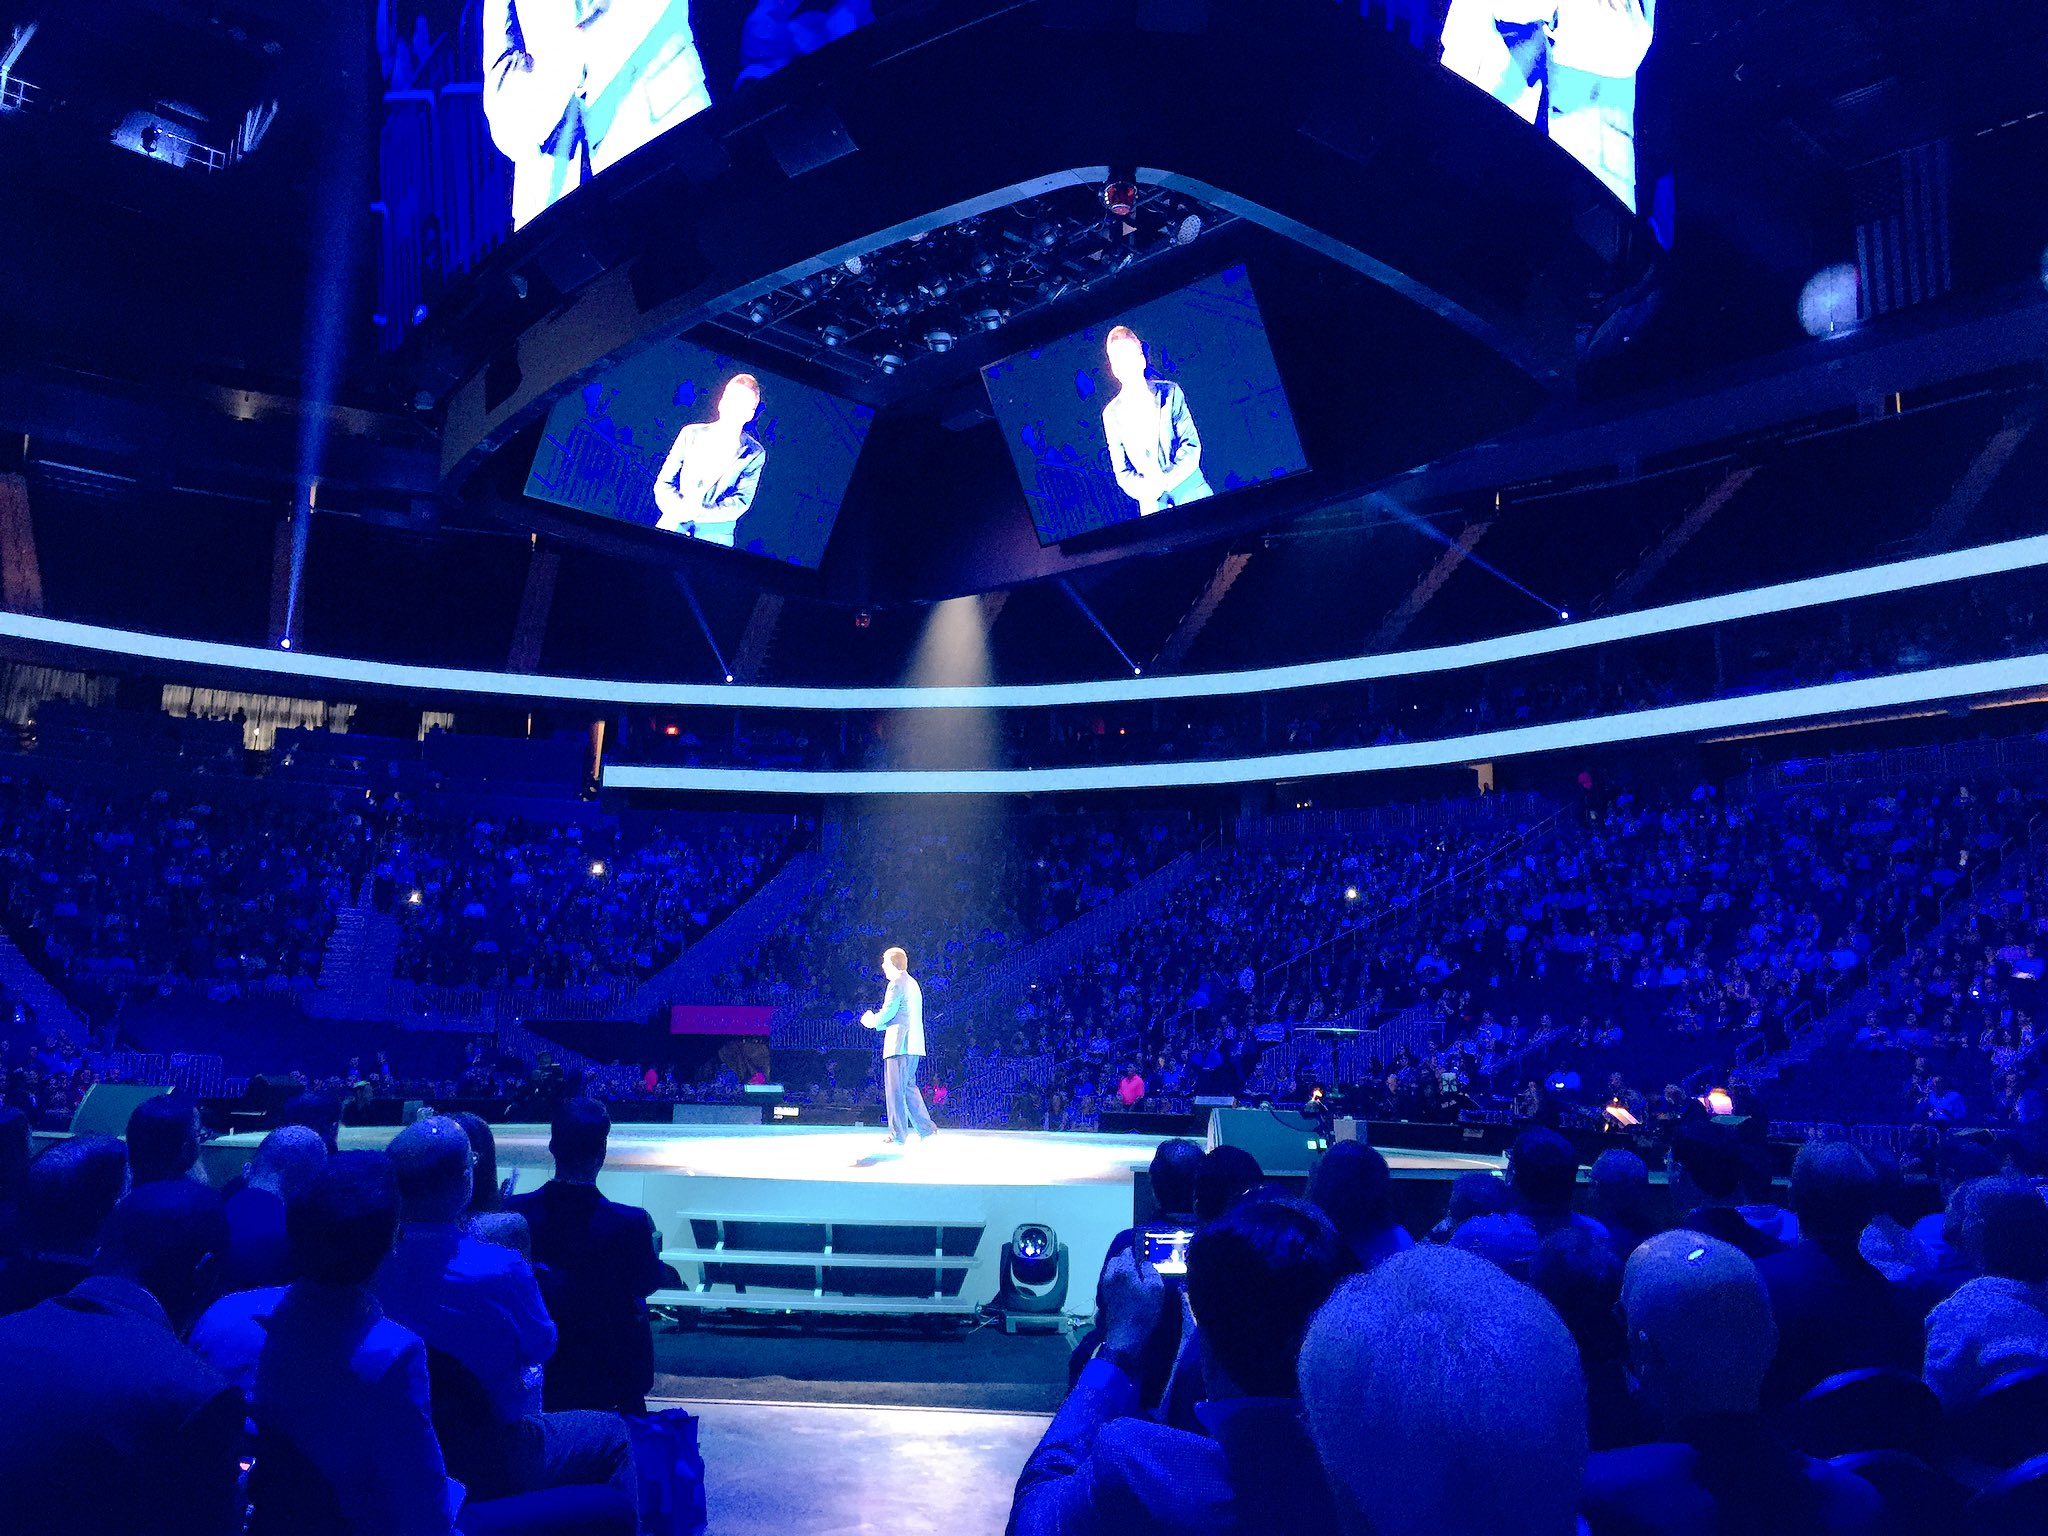 Kicking off #ibmwow main session with Dr John Kelly III talking #Watson, #AI and #cognitive. #WatsonMarketing https://t.co/Jr6WWd46mf